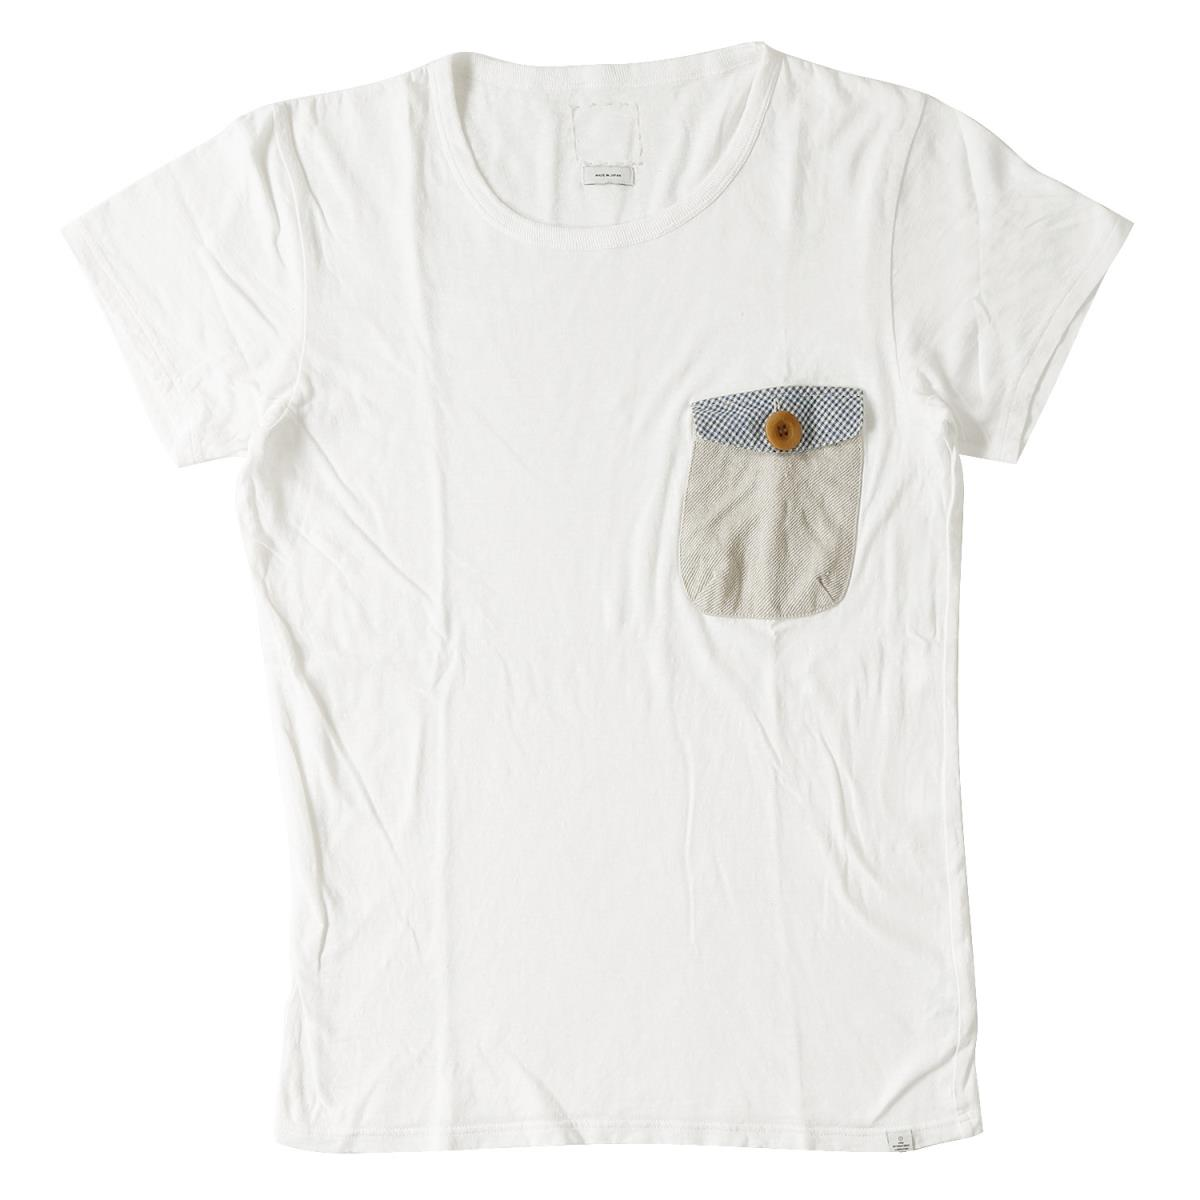 8f4ab872 BEEGLE by Boo-Bee: T-shirt (FLAP POCKET TEE S/S) white 2 with the ...